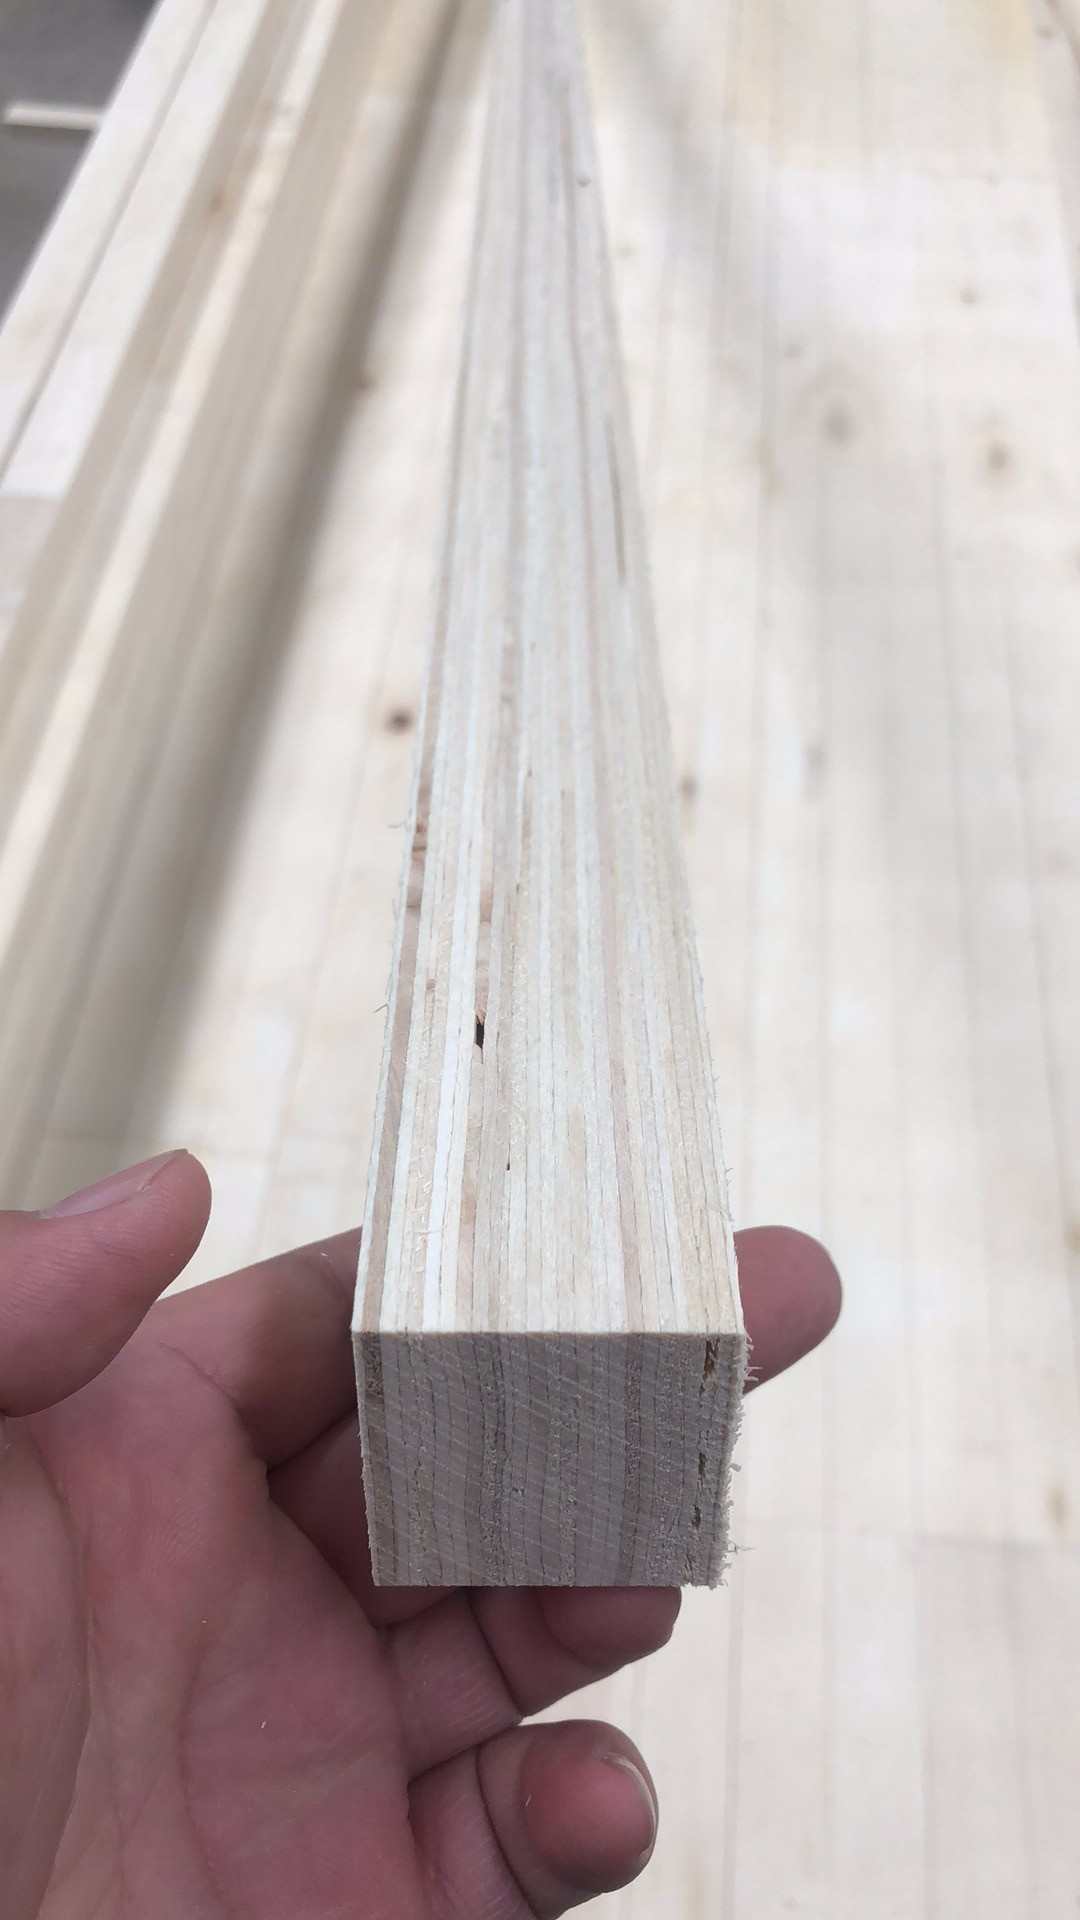 poplar core high density LVL for door core